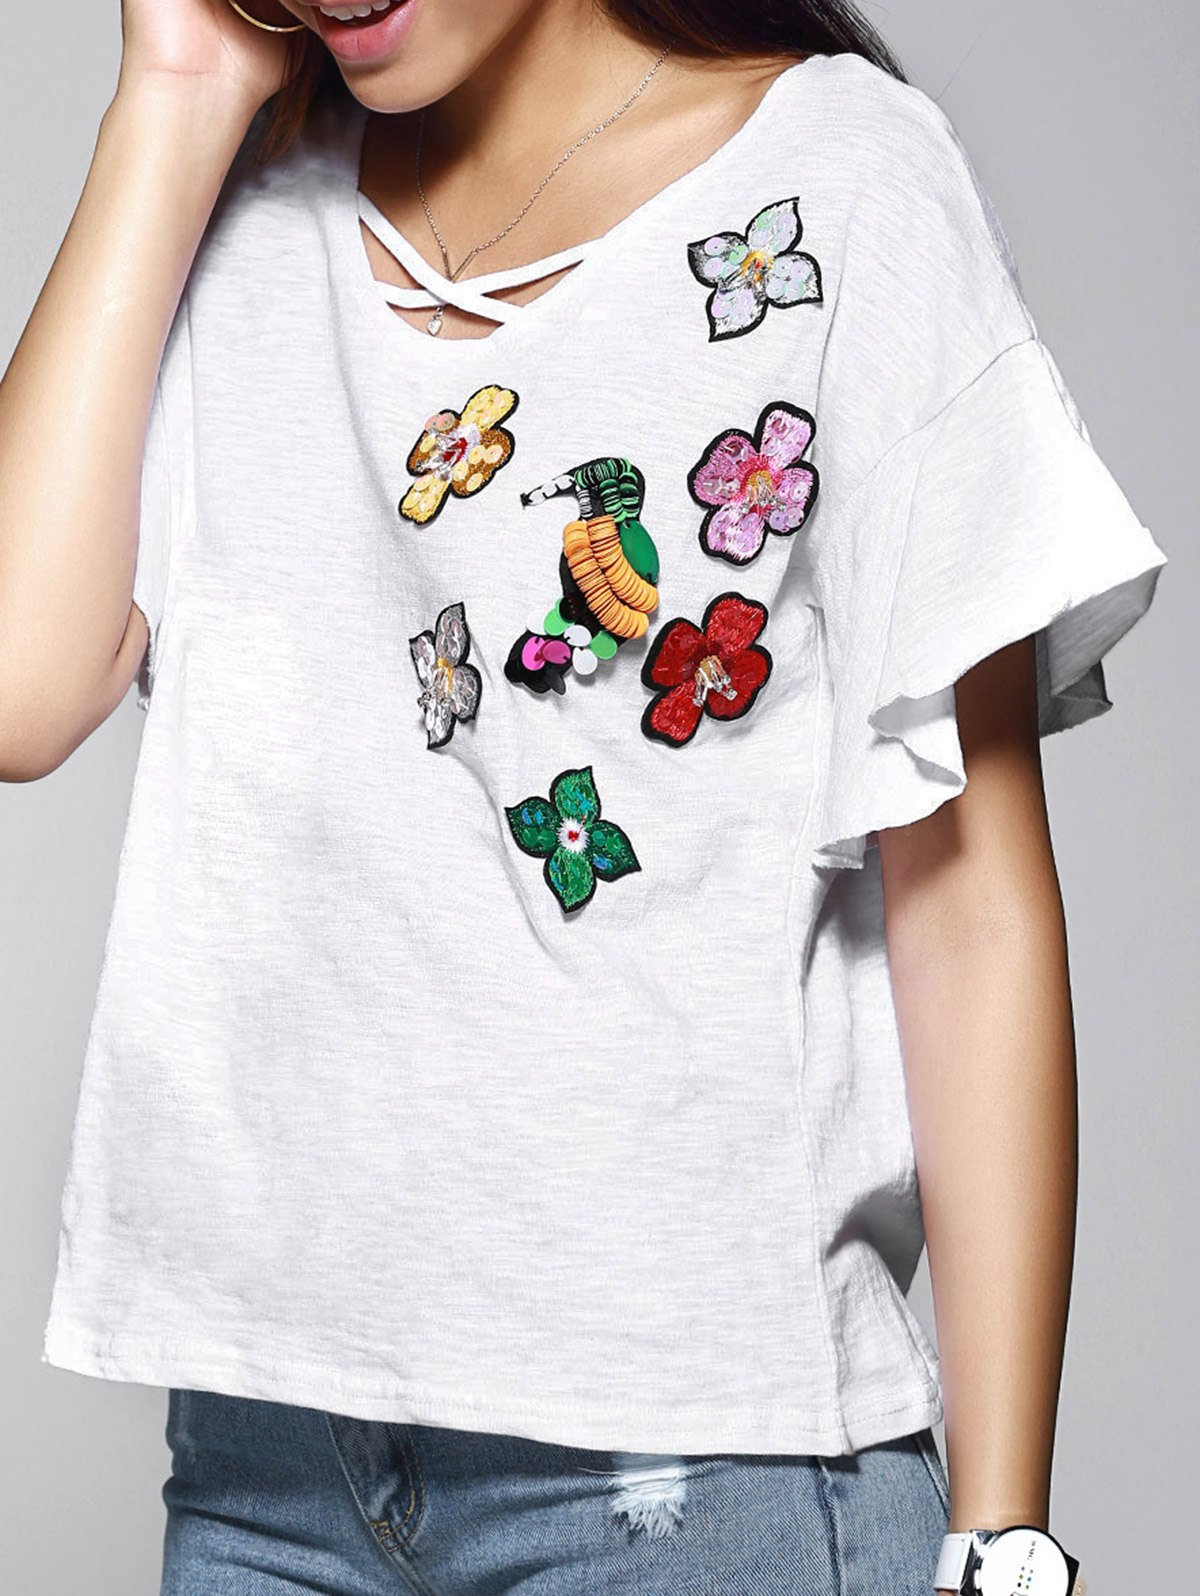 Charming Sequin Embellished Floral Embroidery Women's T-Shirt - WHITE ONE SIZE(FIT SIZE XS TO M)